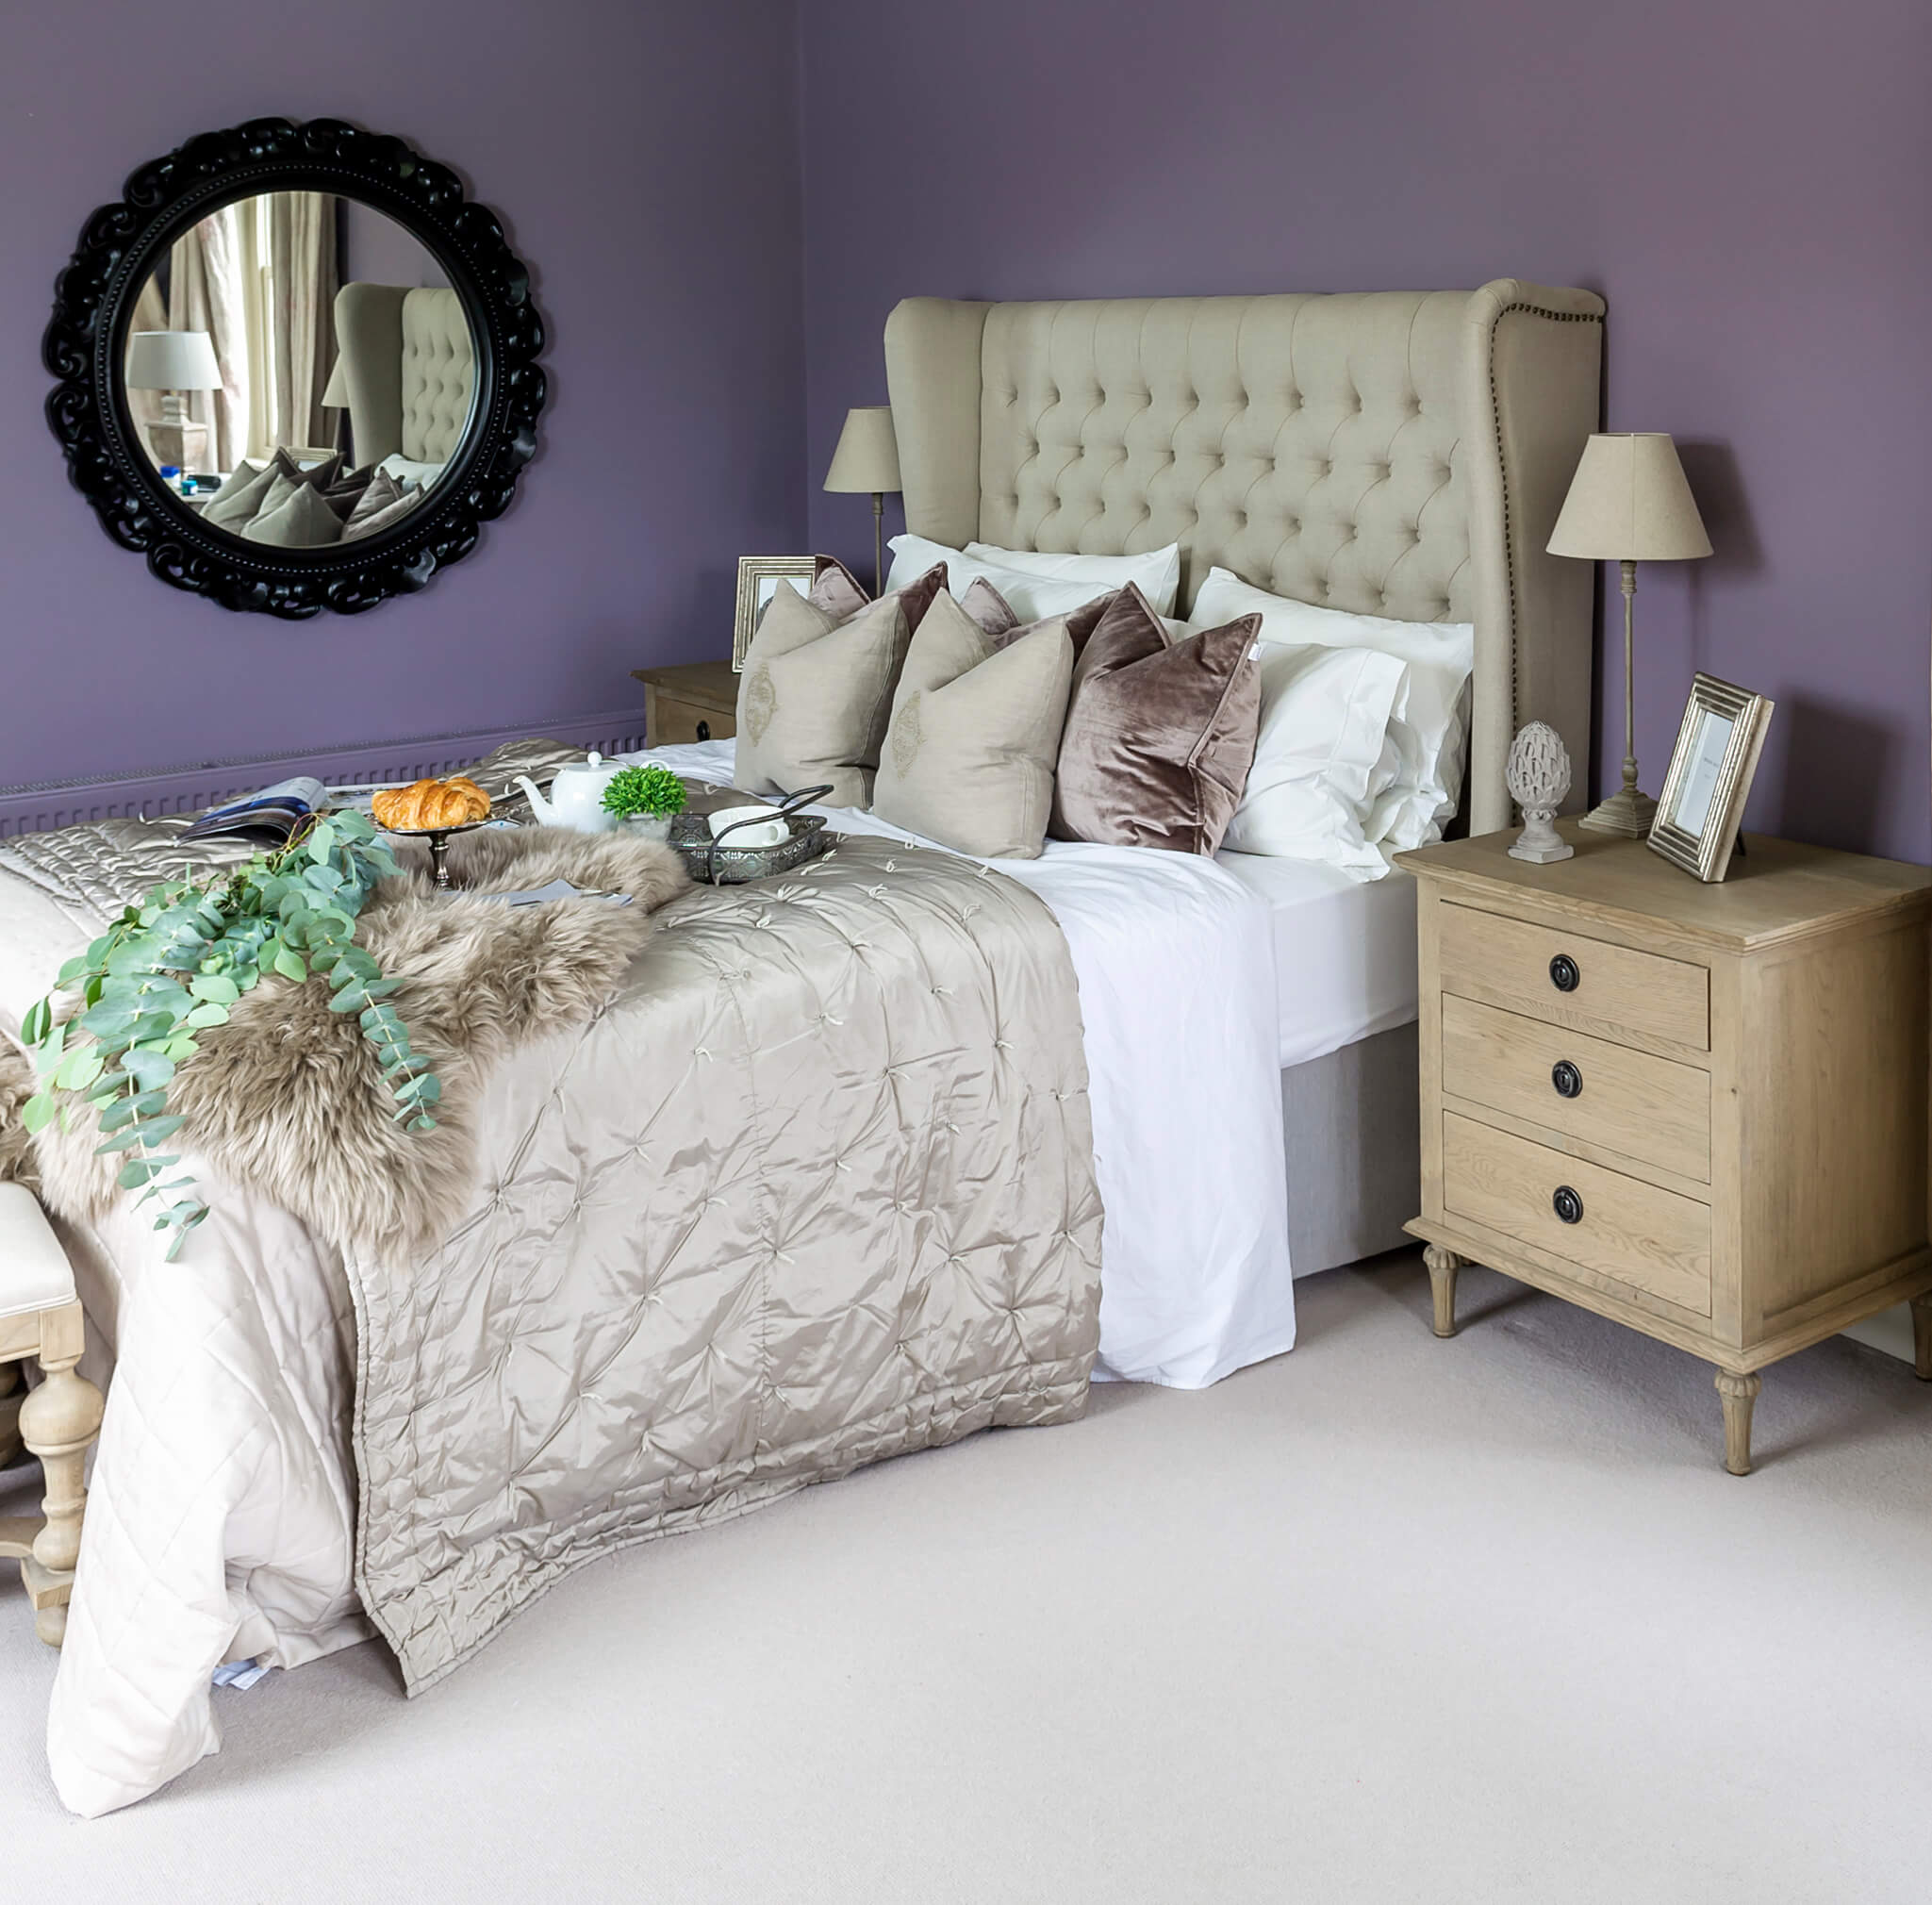 gardens headboard with headboards homes eng sourceimage grayson bedroom full queen details and products dorel fabric linen nailheads living better gray